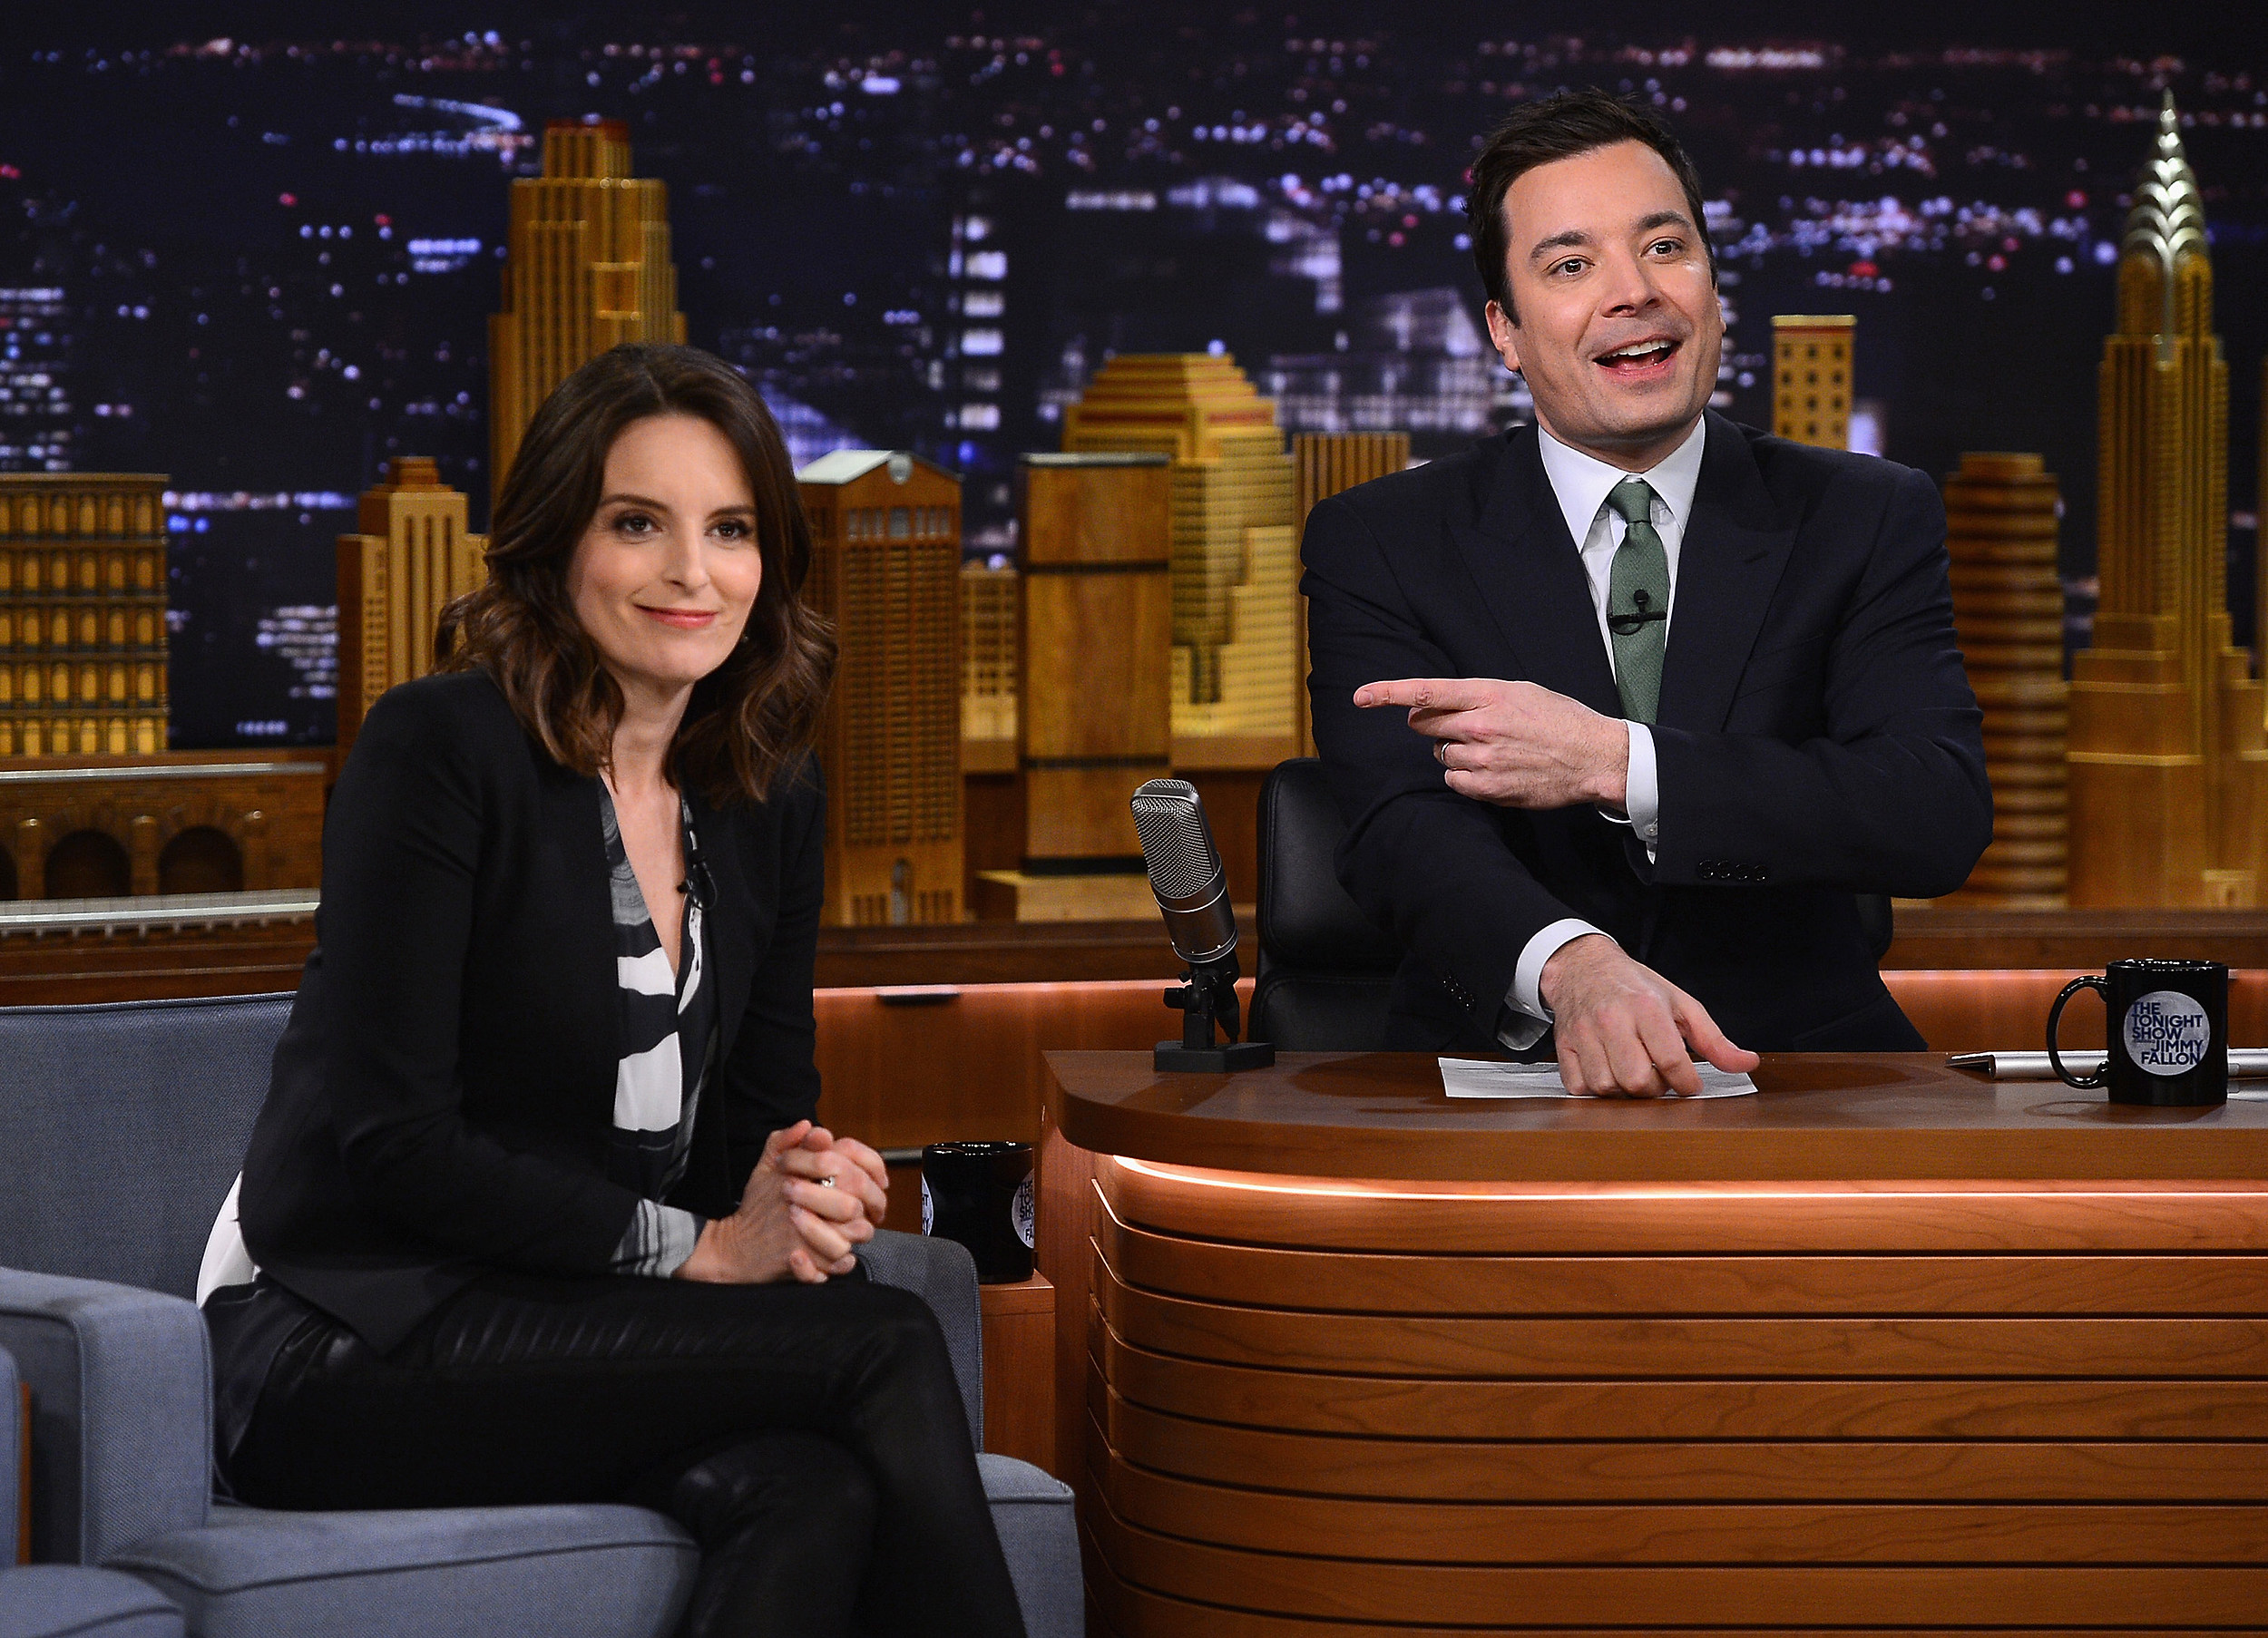 Jimmy Fallon and nbc issue warning to stars